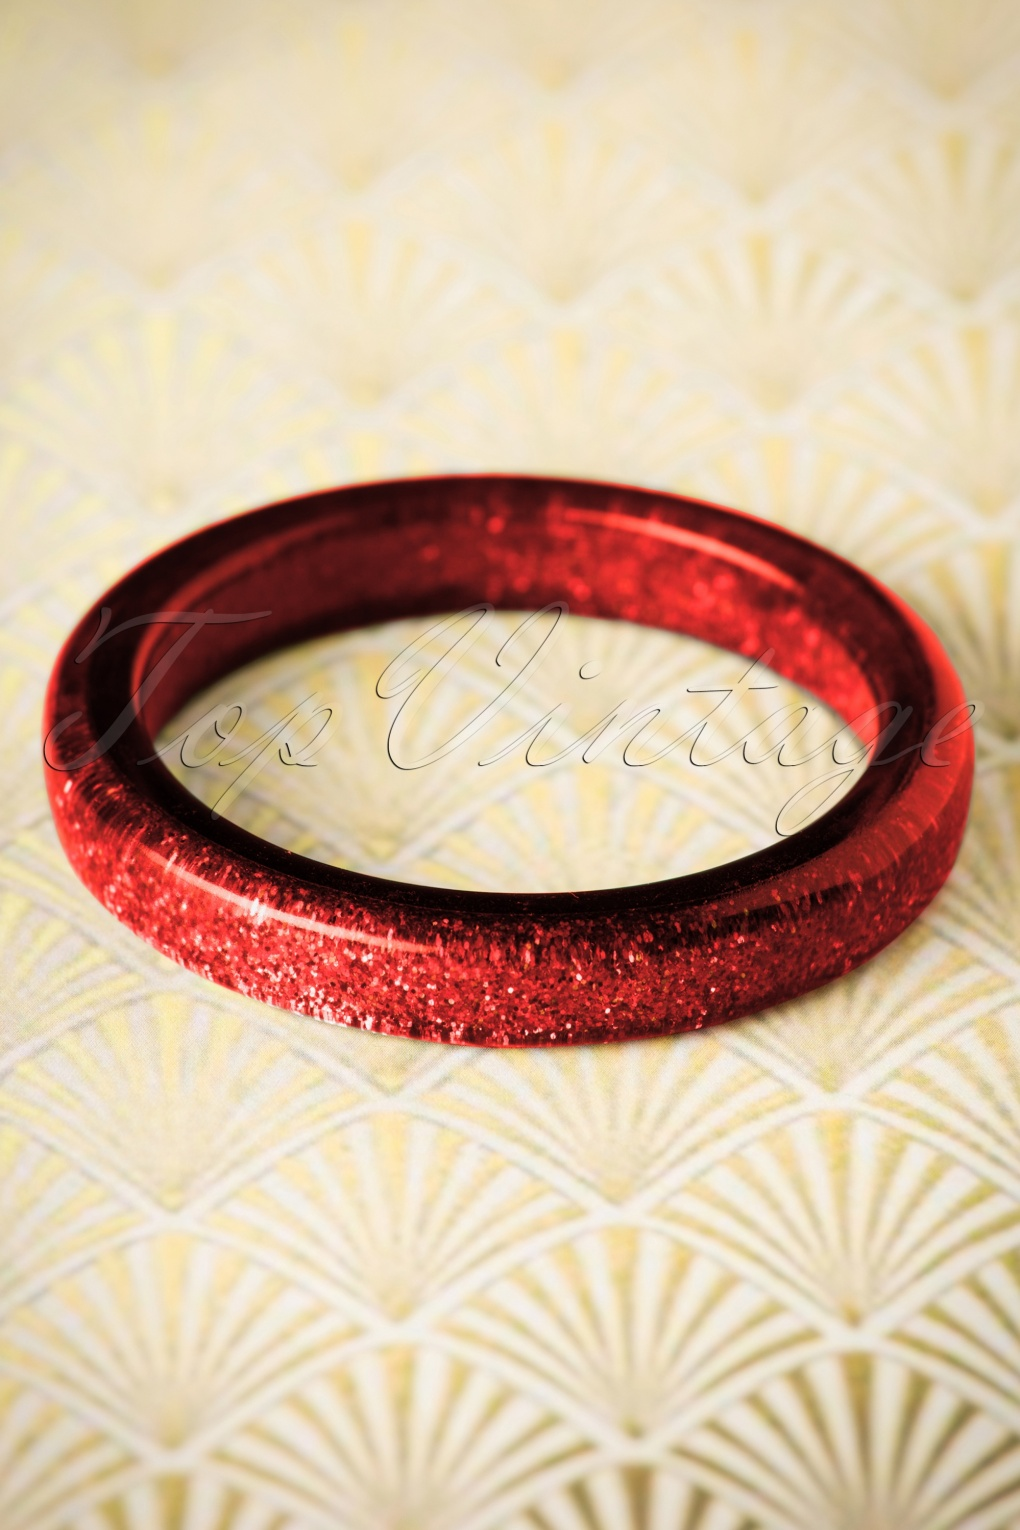 Vintage Style Jewelry, Retro Jewelry TopVintage Exclusive  20s Fedora Midi Glitter Bangle in Red £8.86 AT vintagedancer.com